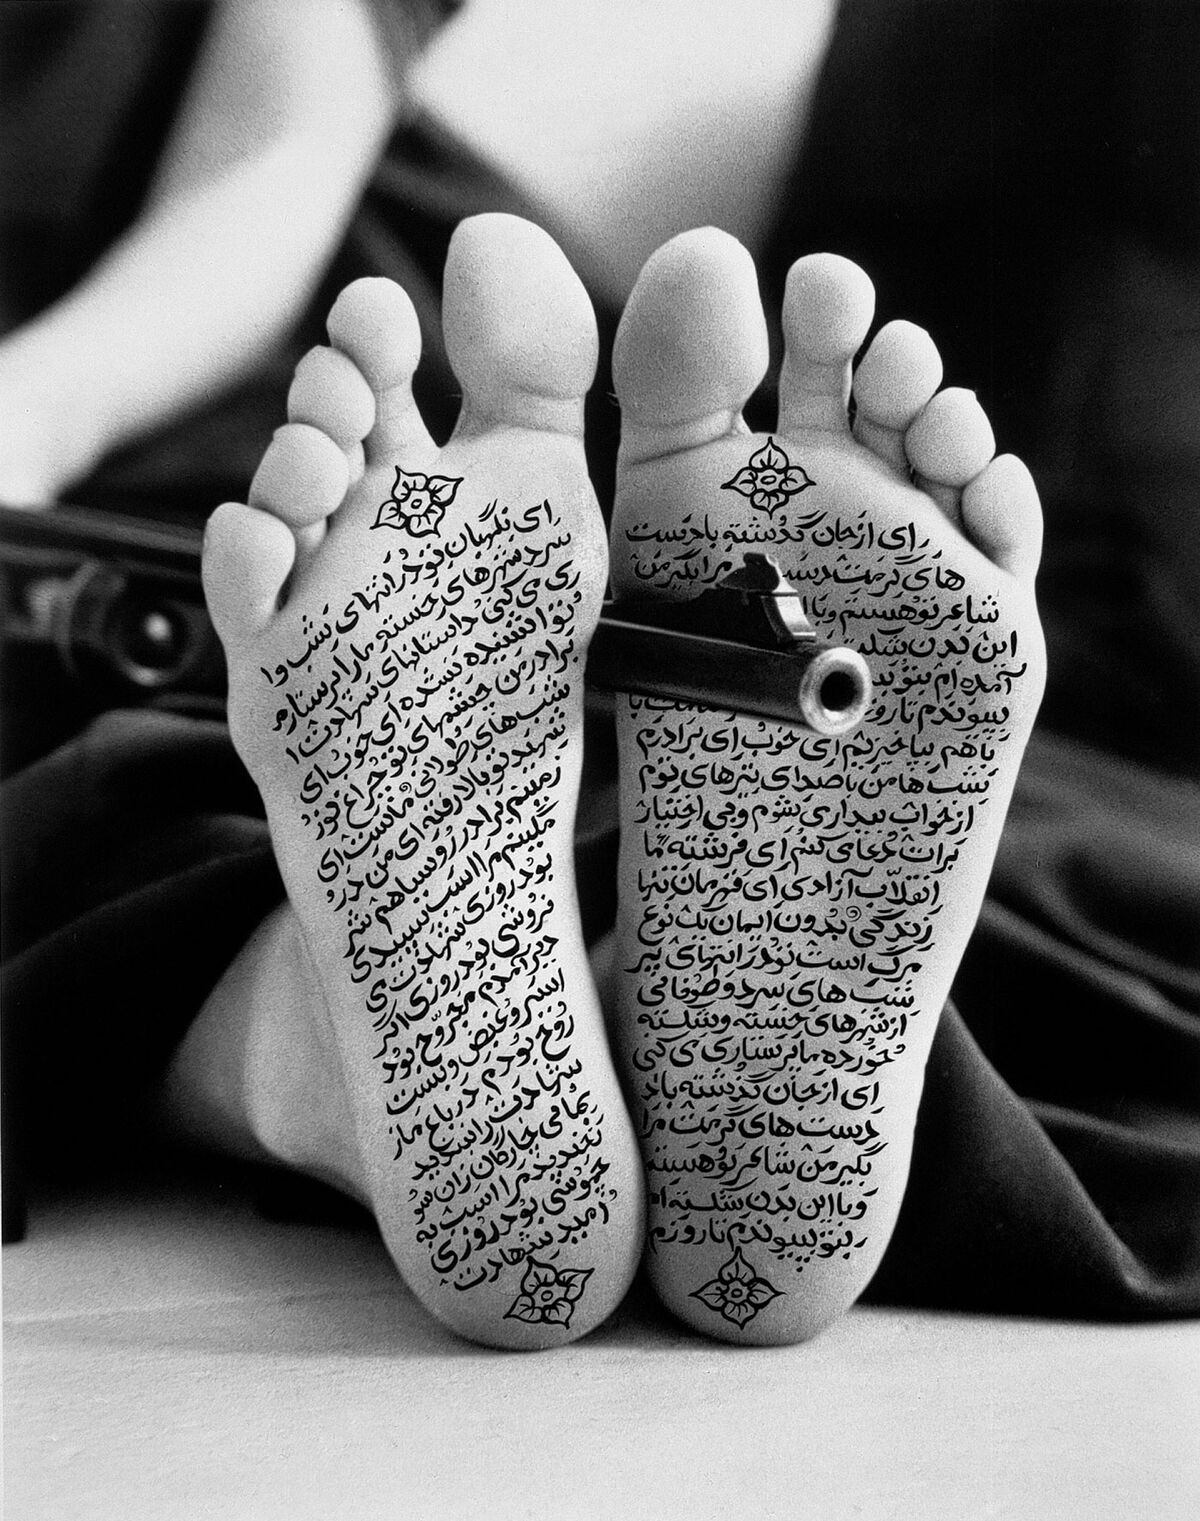 Shirin Neshat, Allegiance with Wakefulness, 1994. © Shirin Neshat. Photo by Cynthia Preston. Courtesy of the artist and Gladstone Gallery, New York and Brussels.